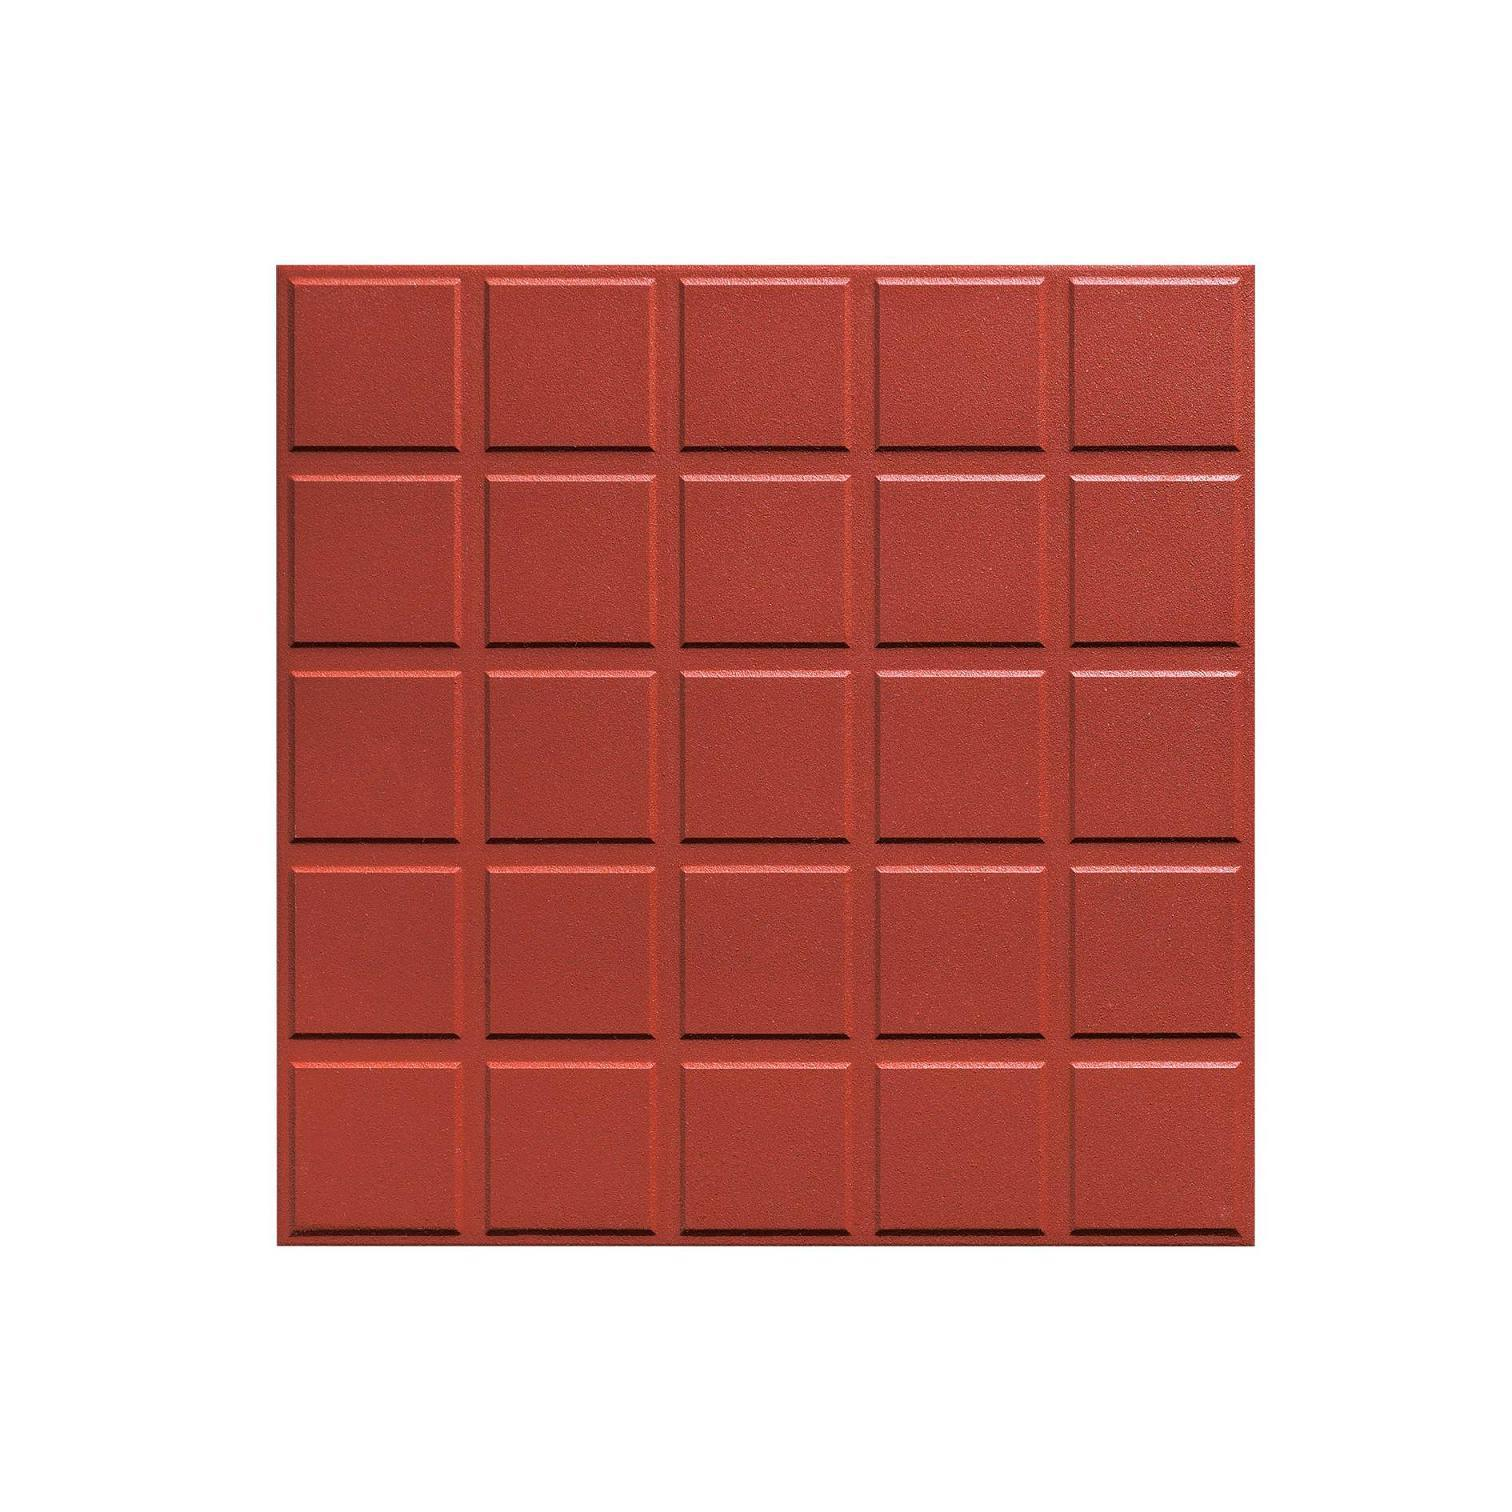 china cheap red clay floor tiles outdoor terracotta tiles photos pictures made in. Black Bedroom Furniture Sets. Home Design Ideas